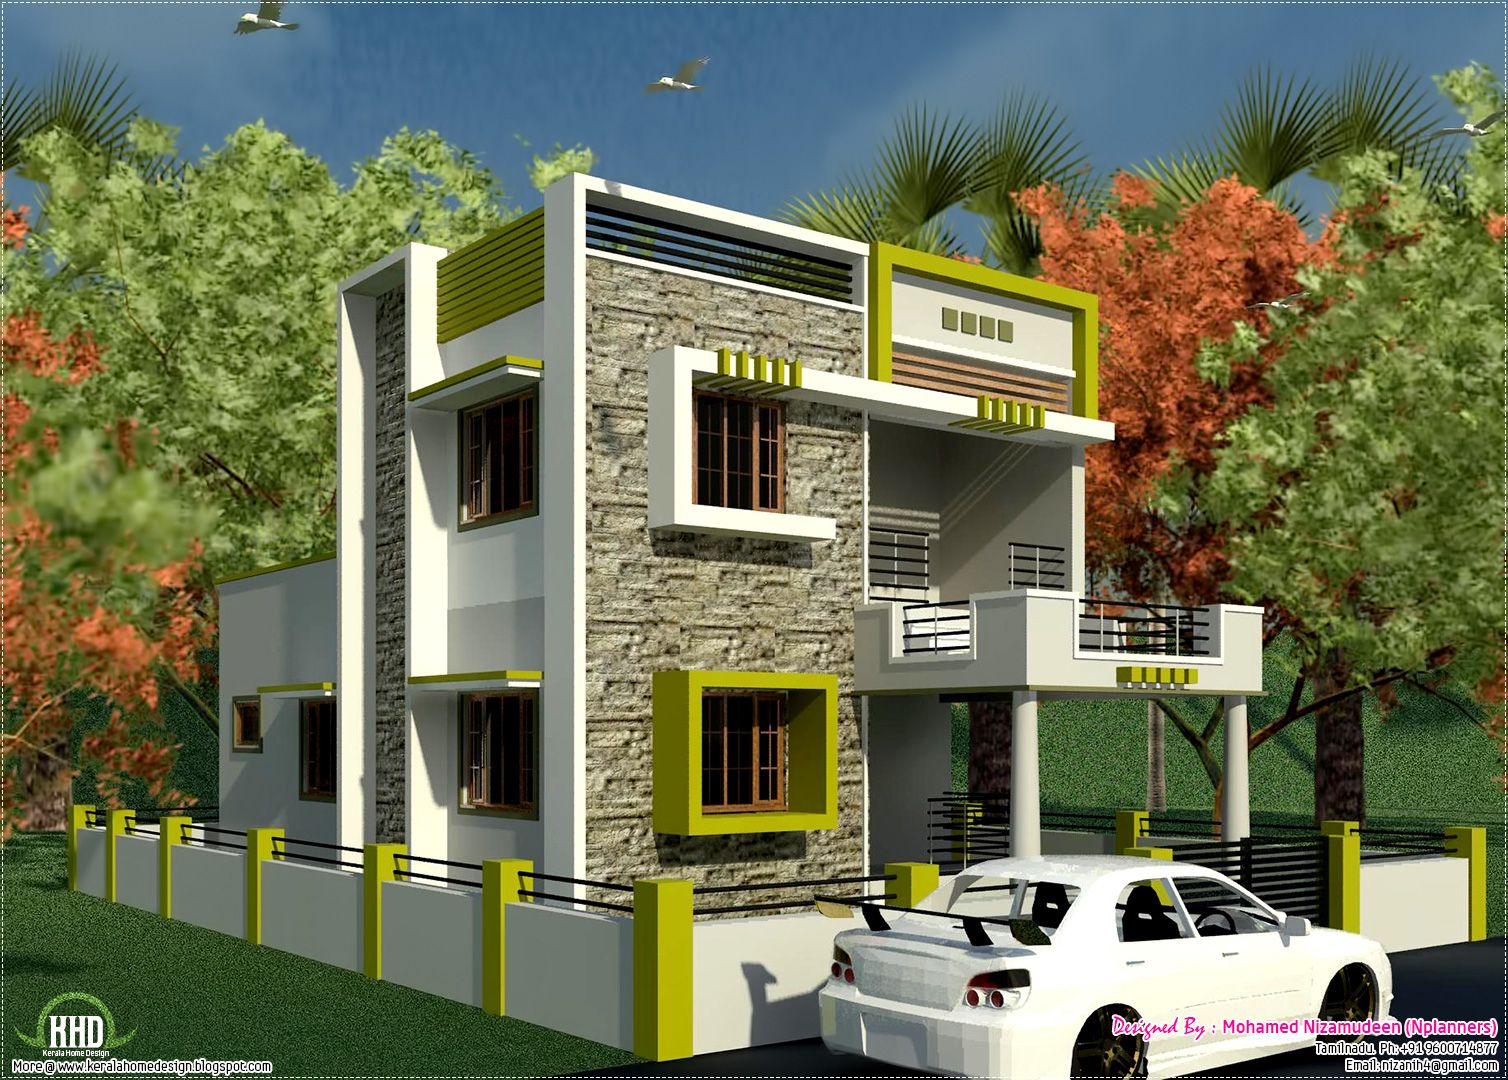 Small house with car park design tobfav com ideas for Simple house designs indian style